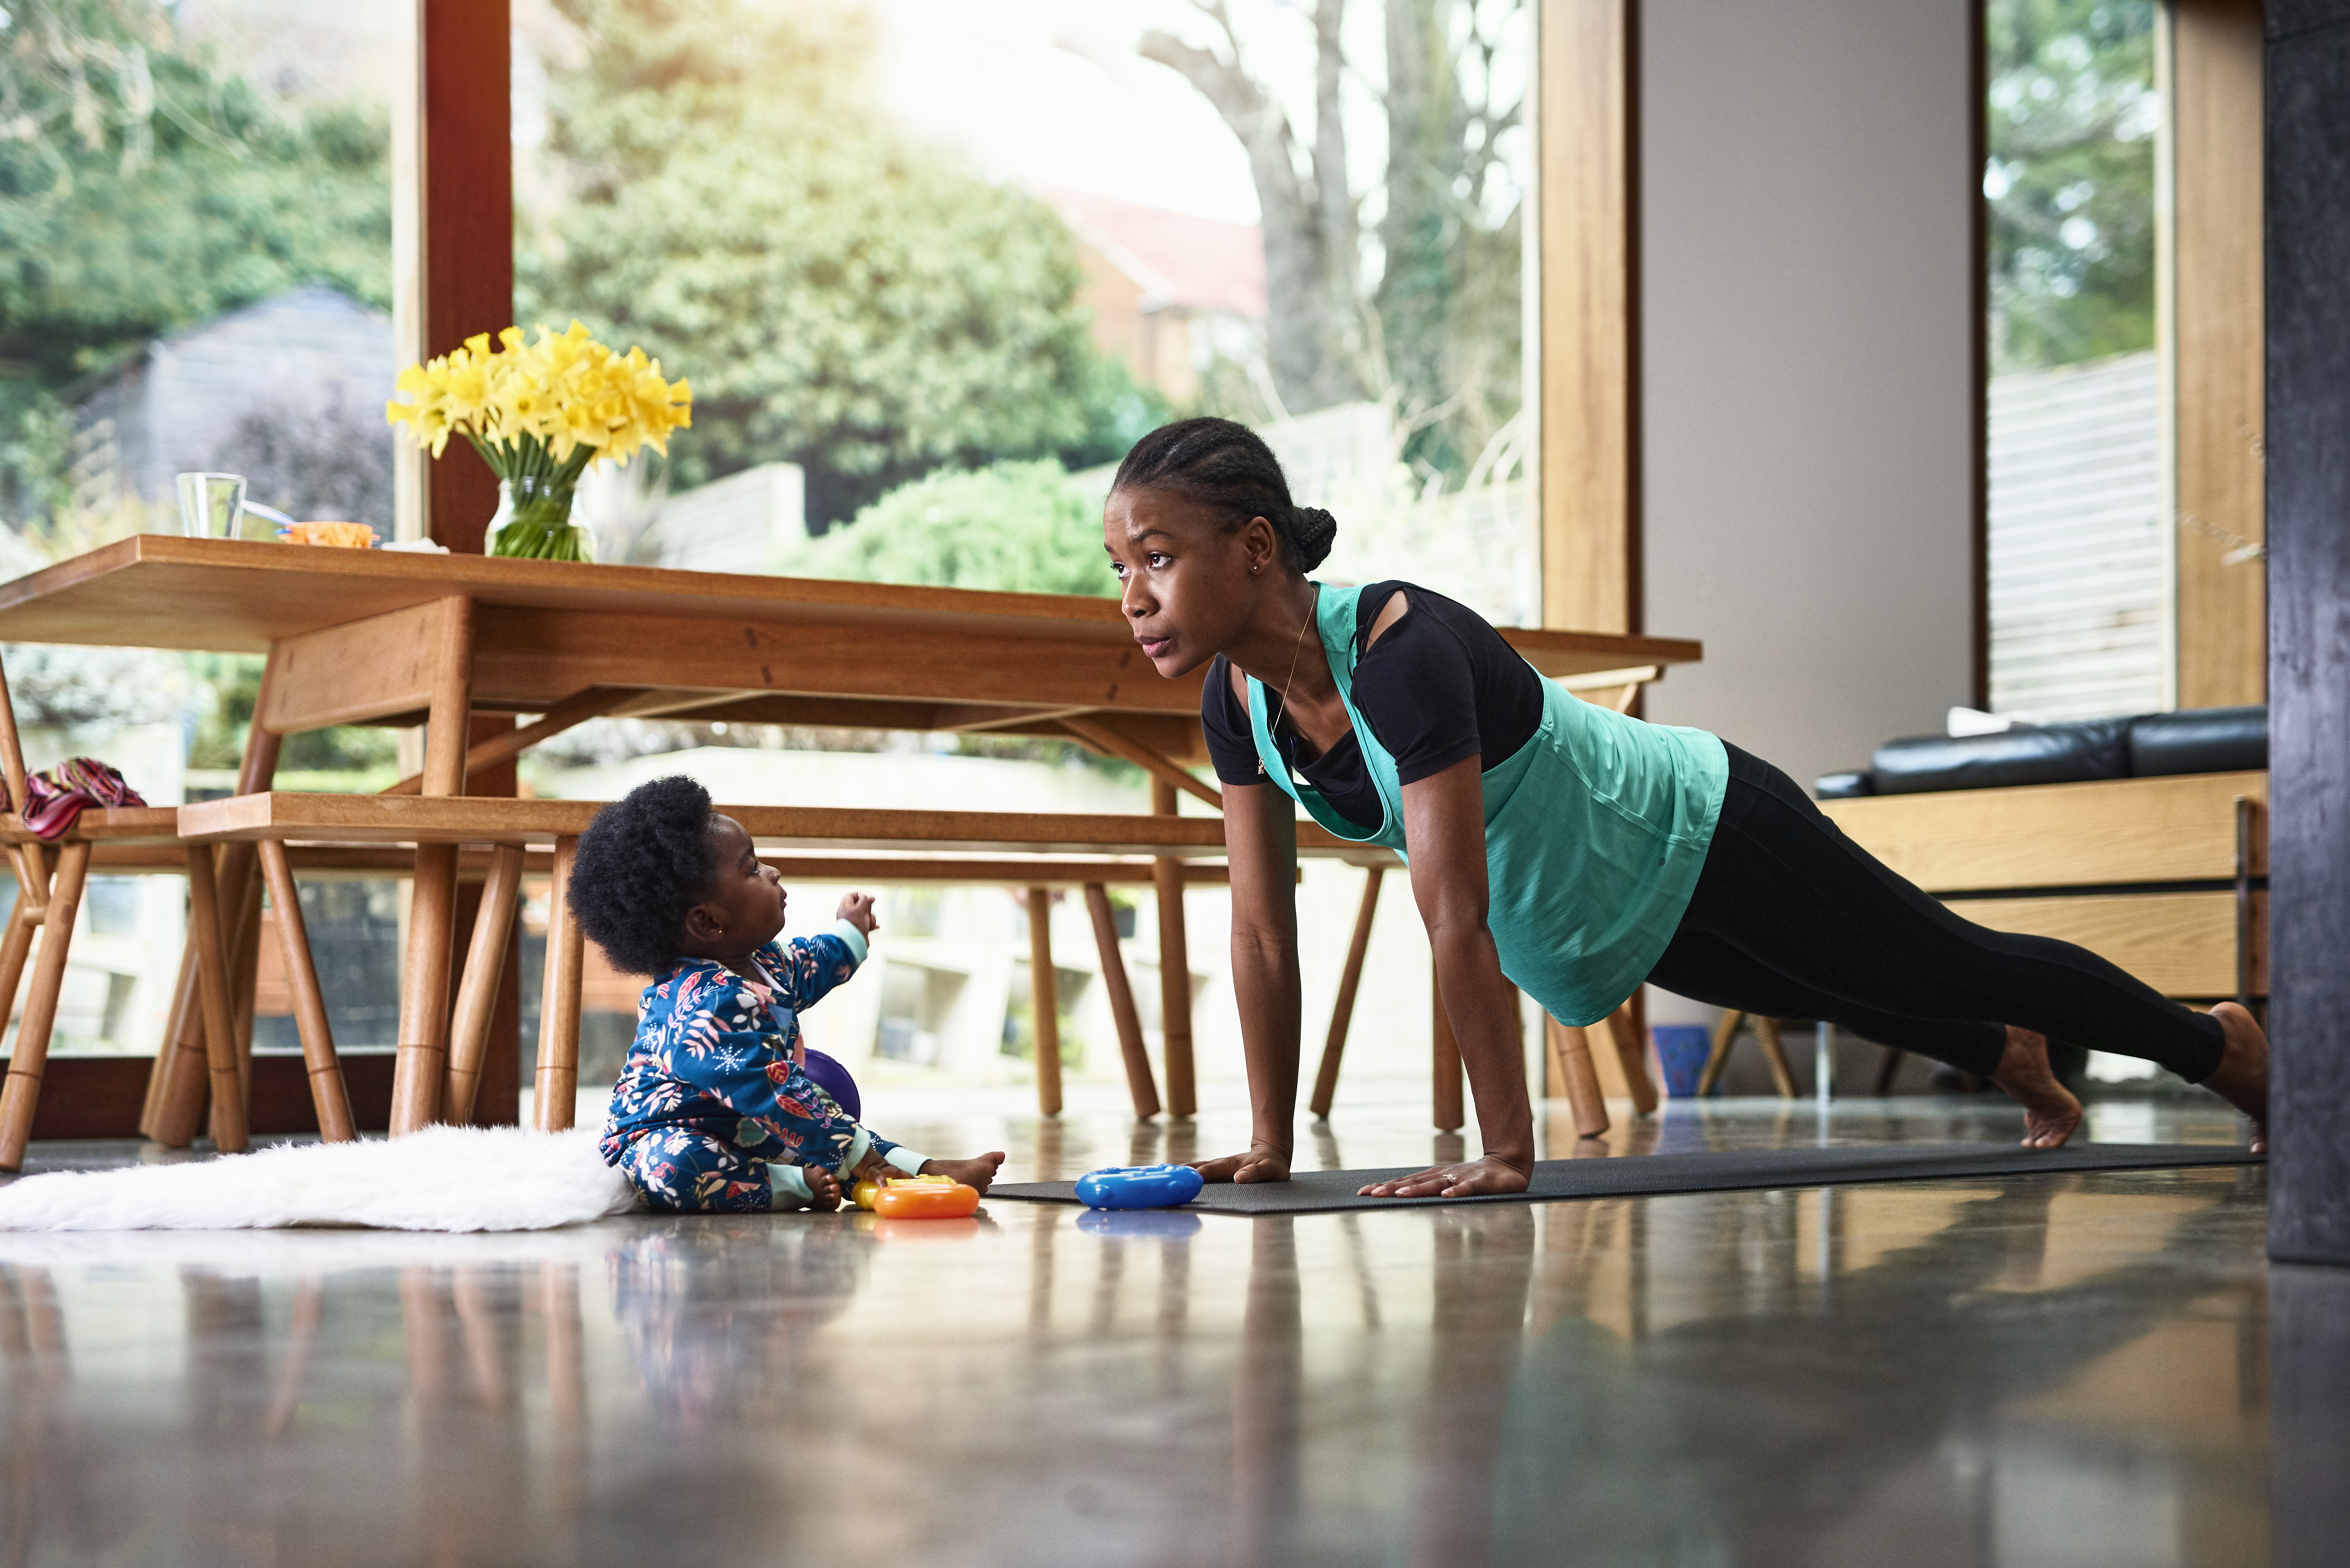 Staying focused on your fitness goals when working from home